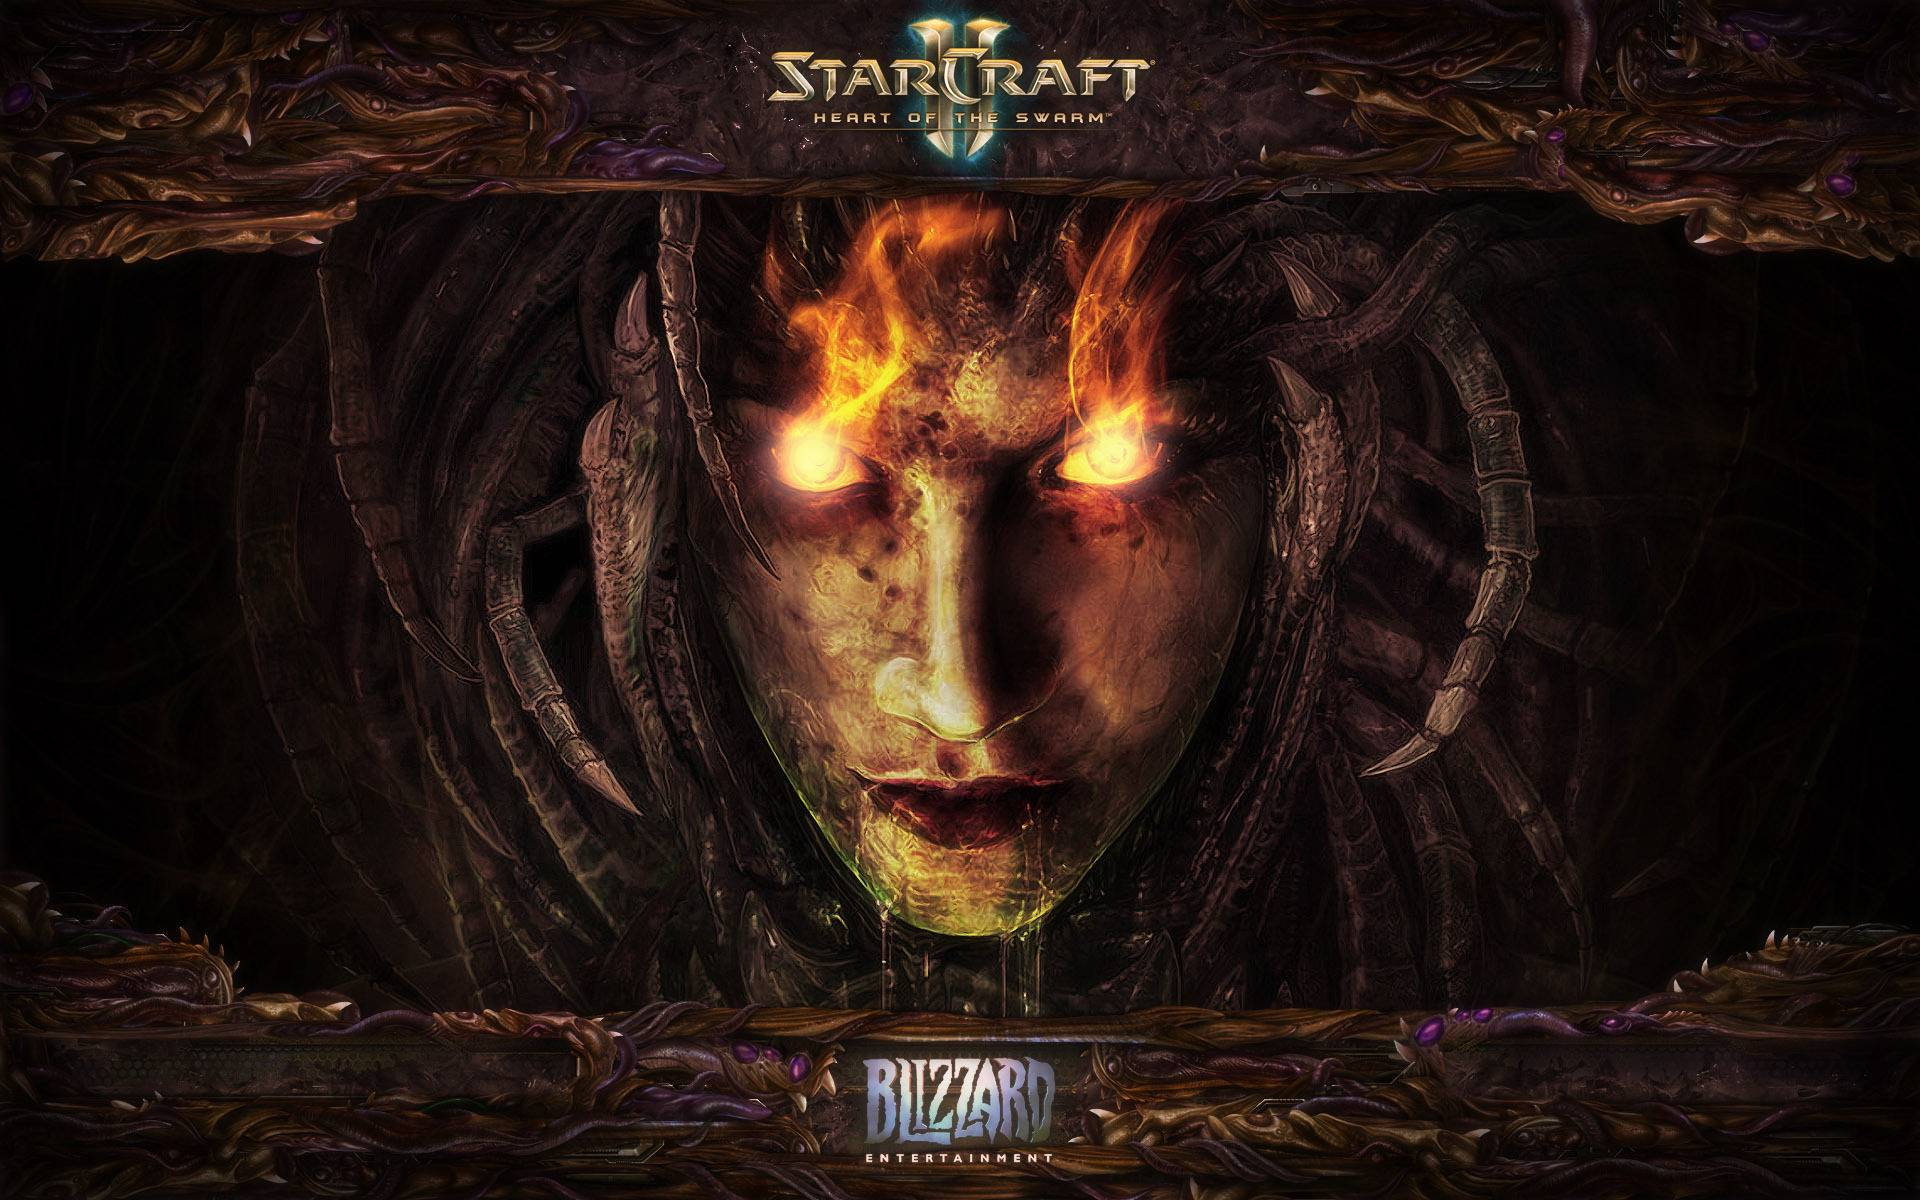 StarCraft II Heart of the Swarm HD Wallpapers and Background 1920x1200